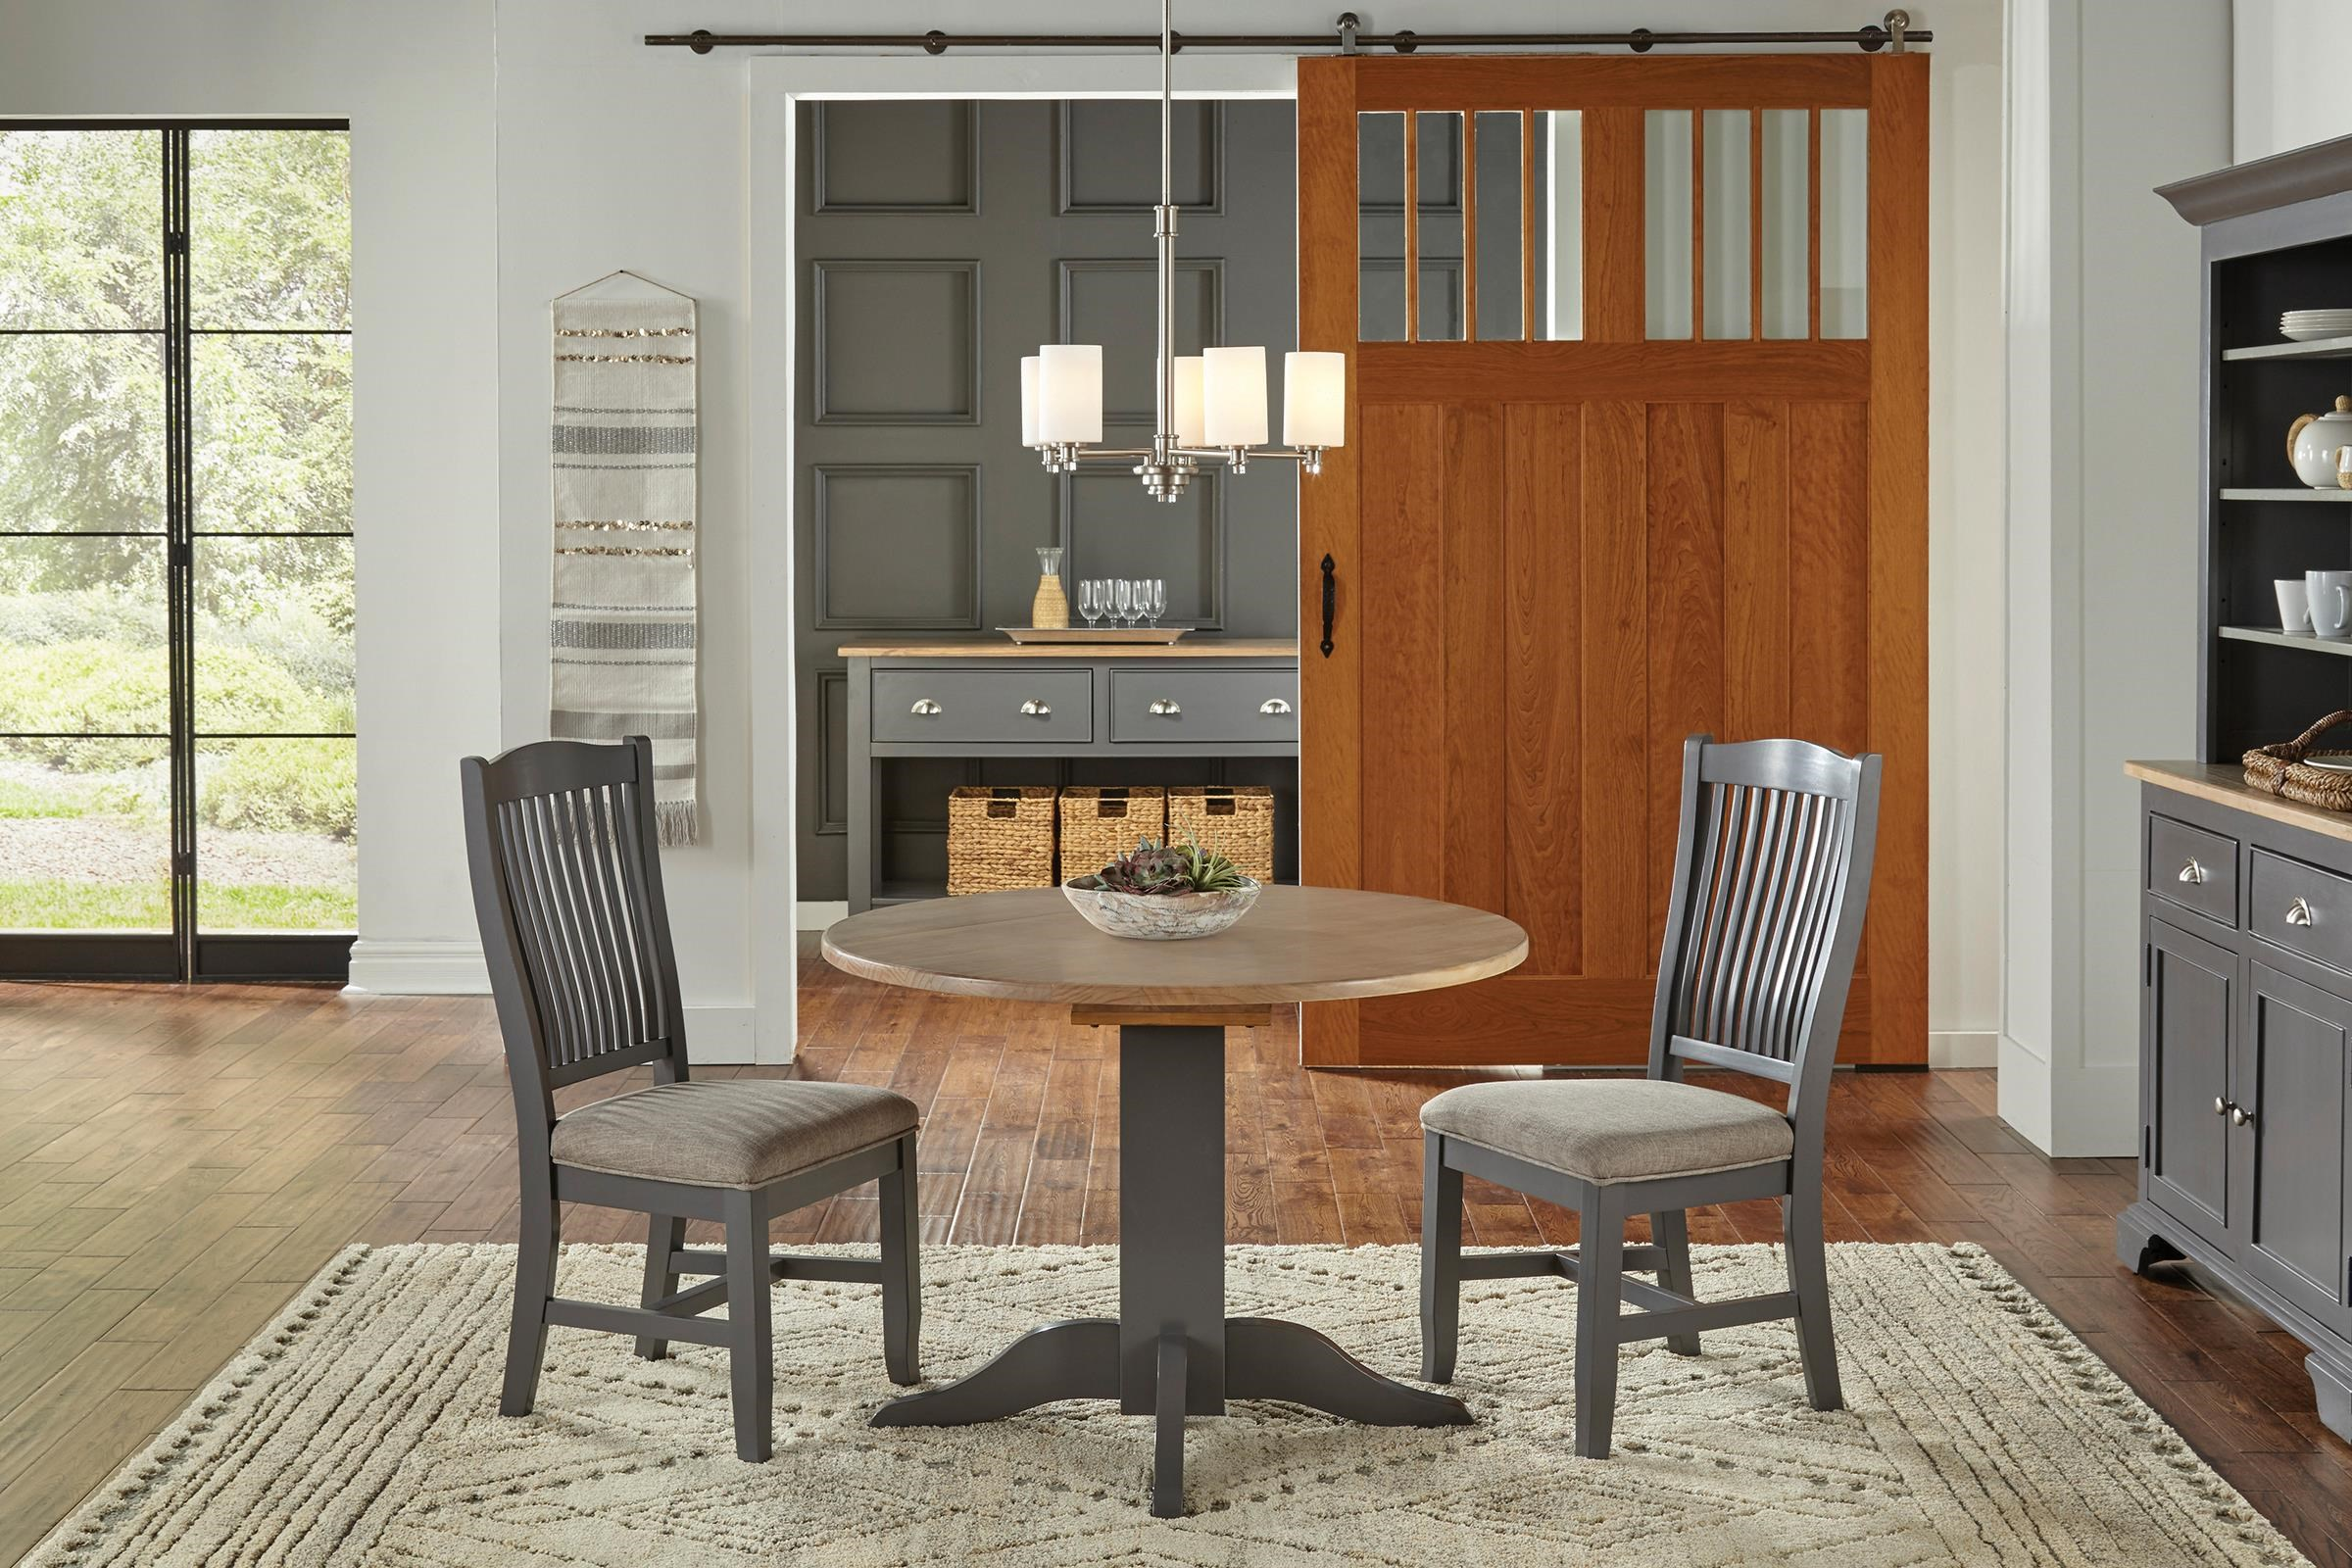 Port Townsend 42 Inch Table with 2 Chairs by AAmerica at Johnny Janosik